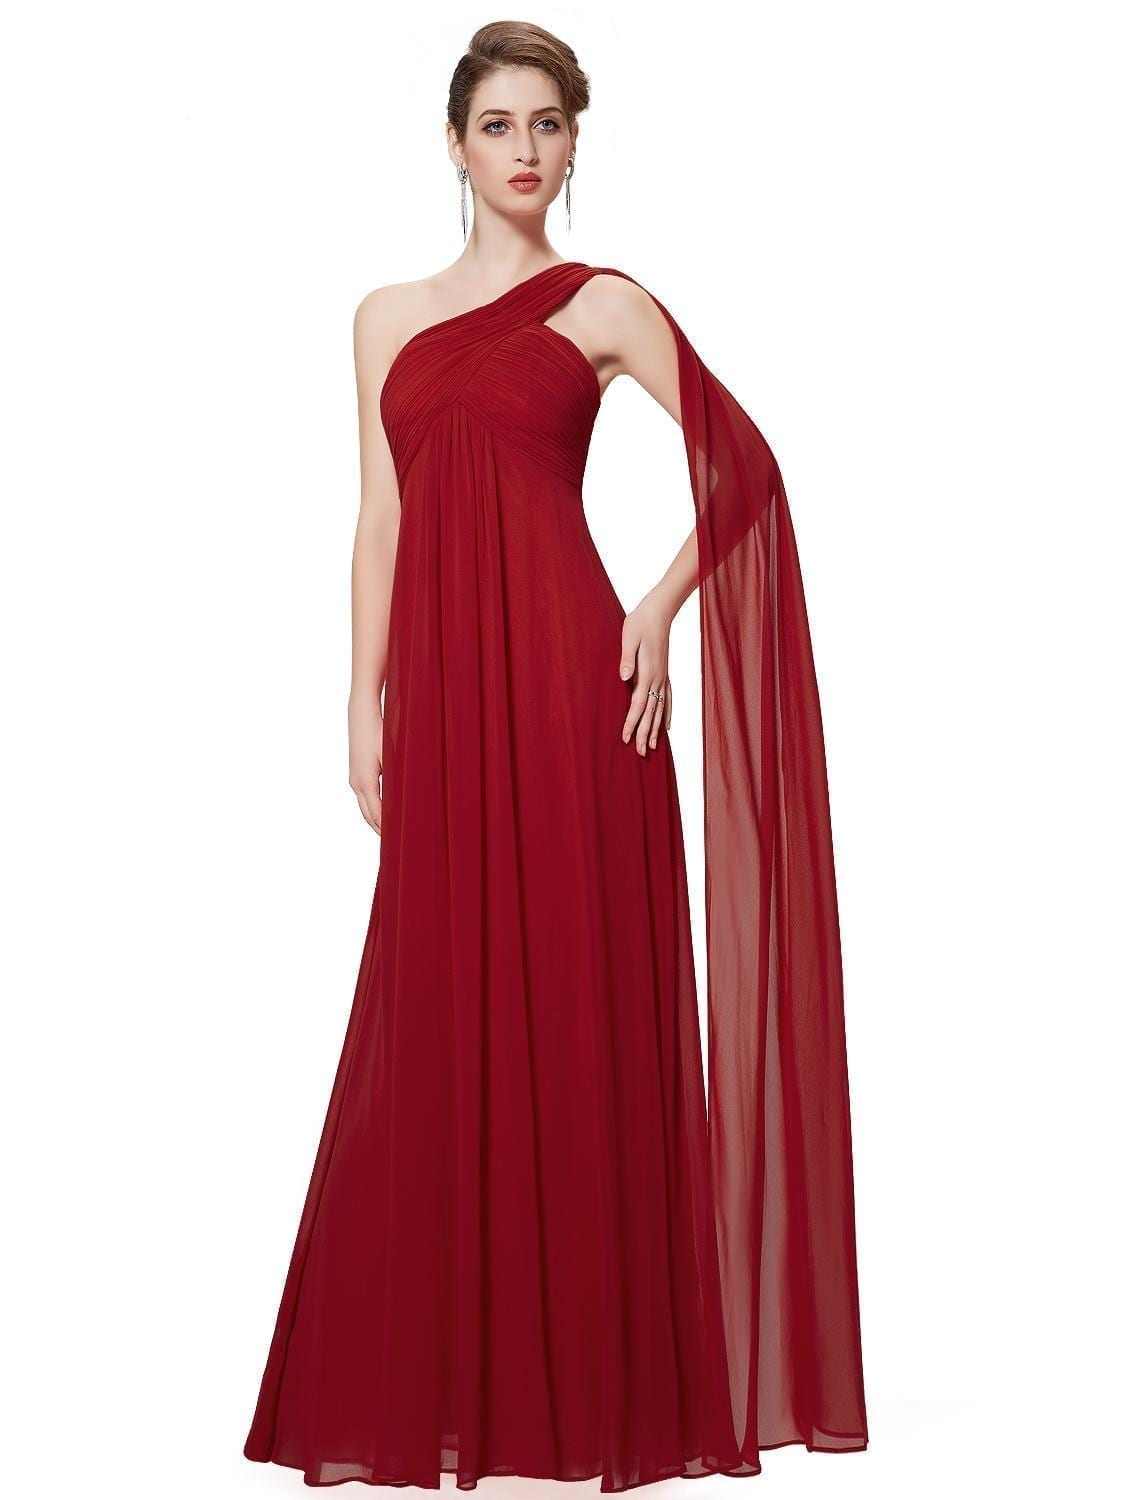 A-line-one-shoulder-red-ruffles-padded-long-bridesmaid-dress